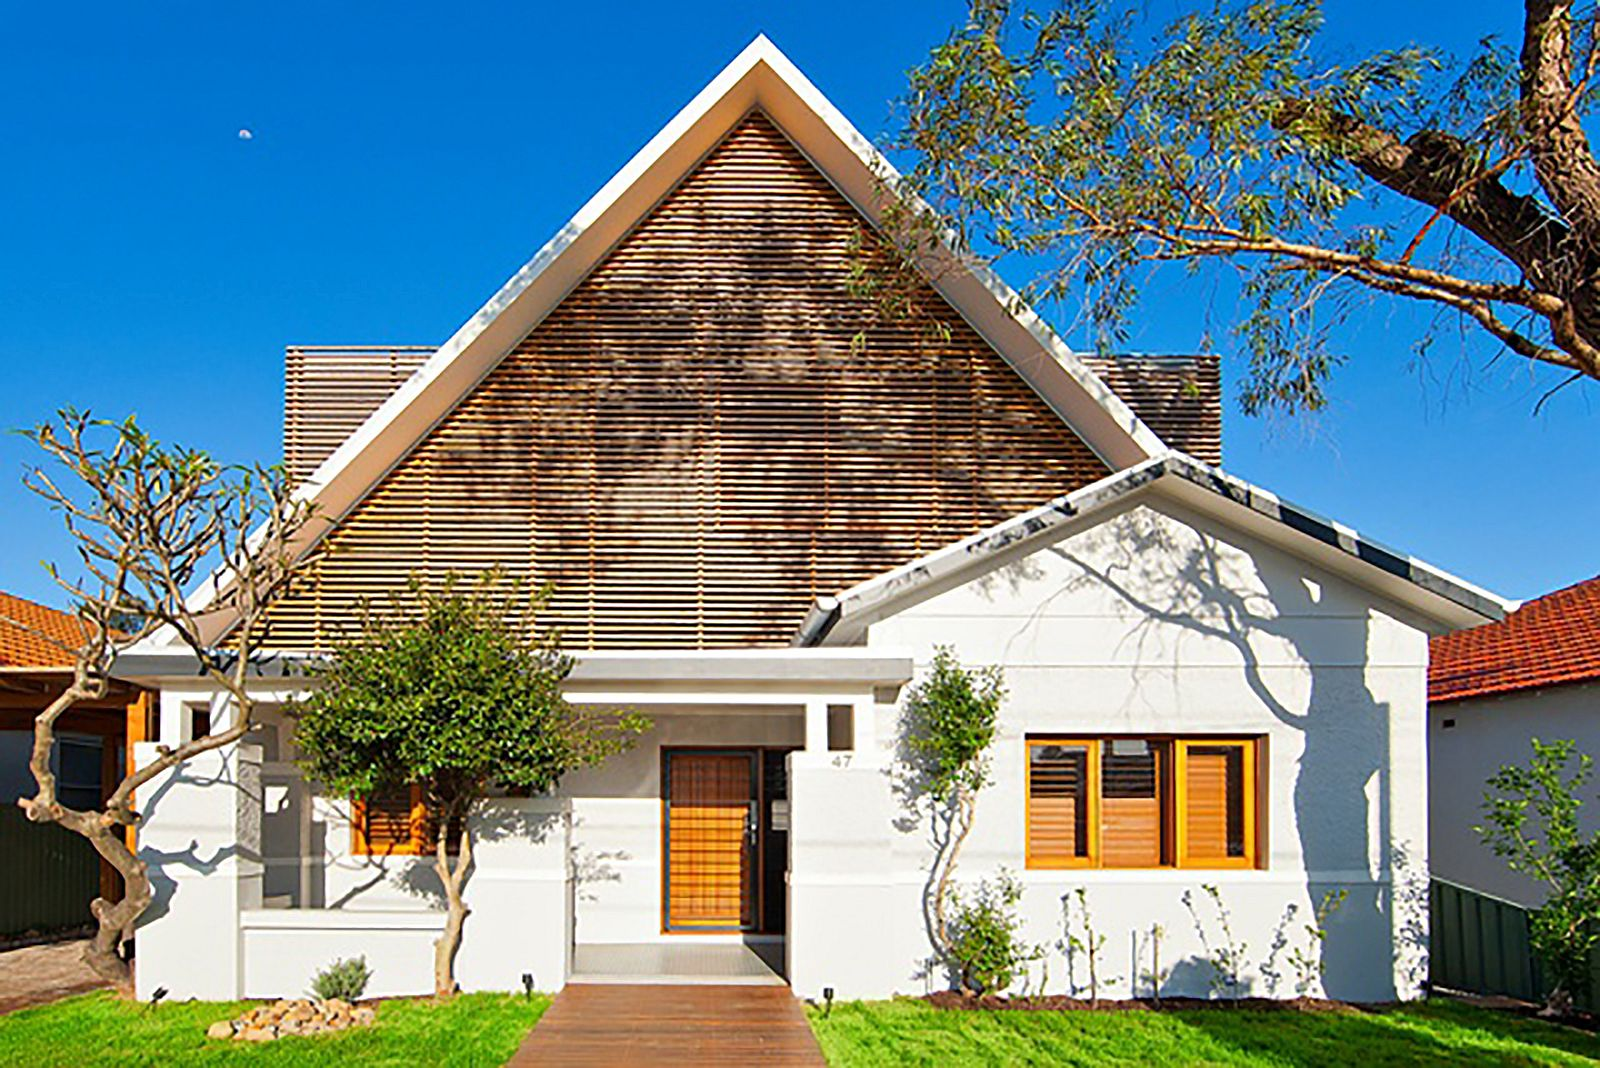 Facade-of-1920s-Californian-bungalow-in-Sydney-with-a-classic-design-64667